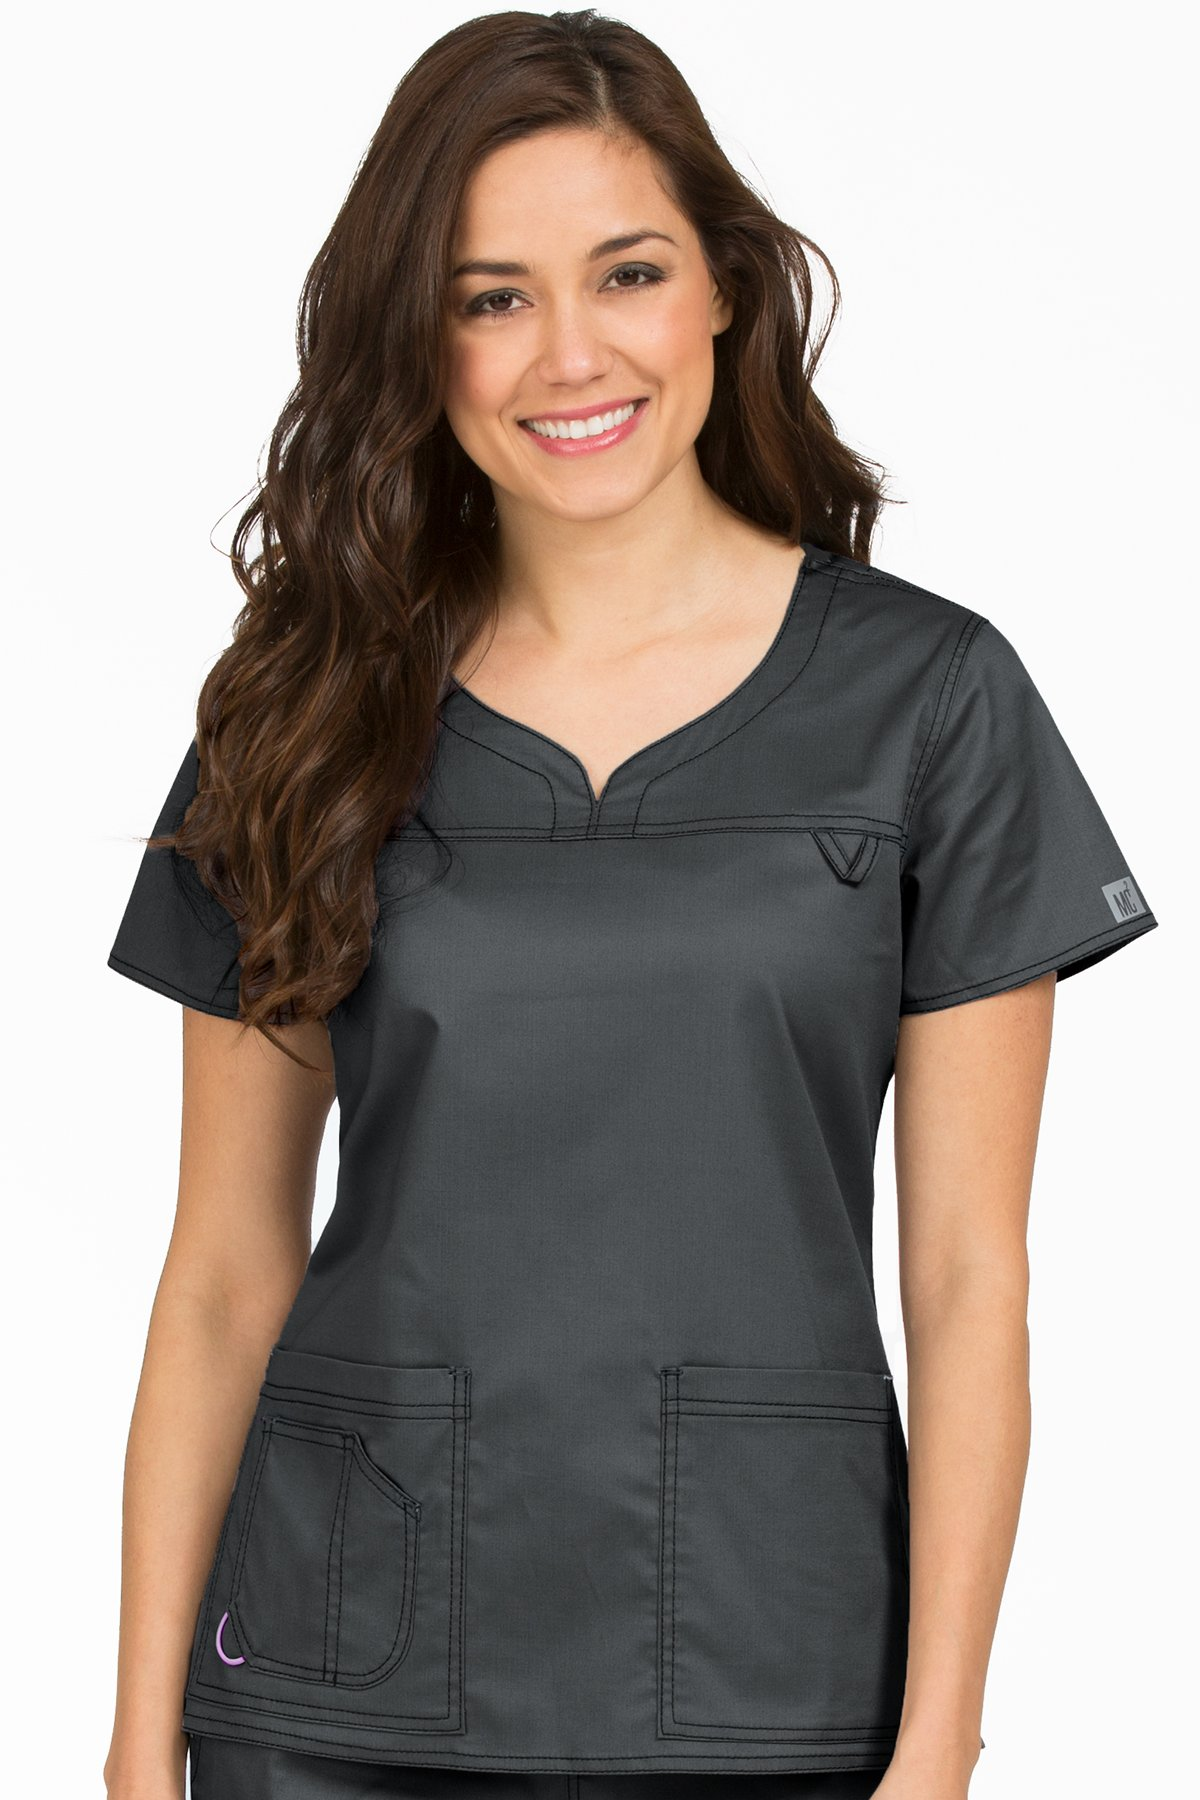 Med Couture Women's 'MC2' Sport Neckline Lexi Scrub Top, Pewter, Large